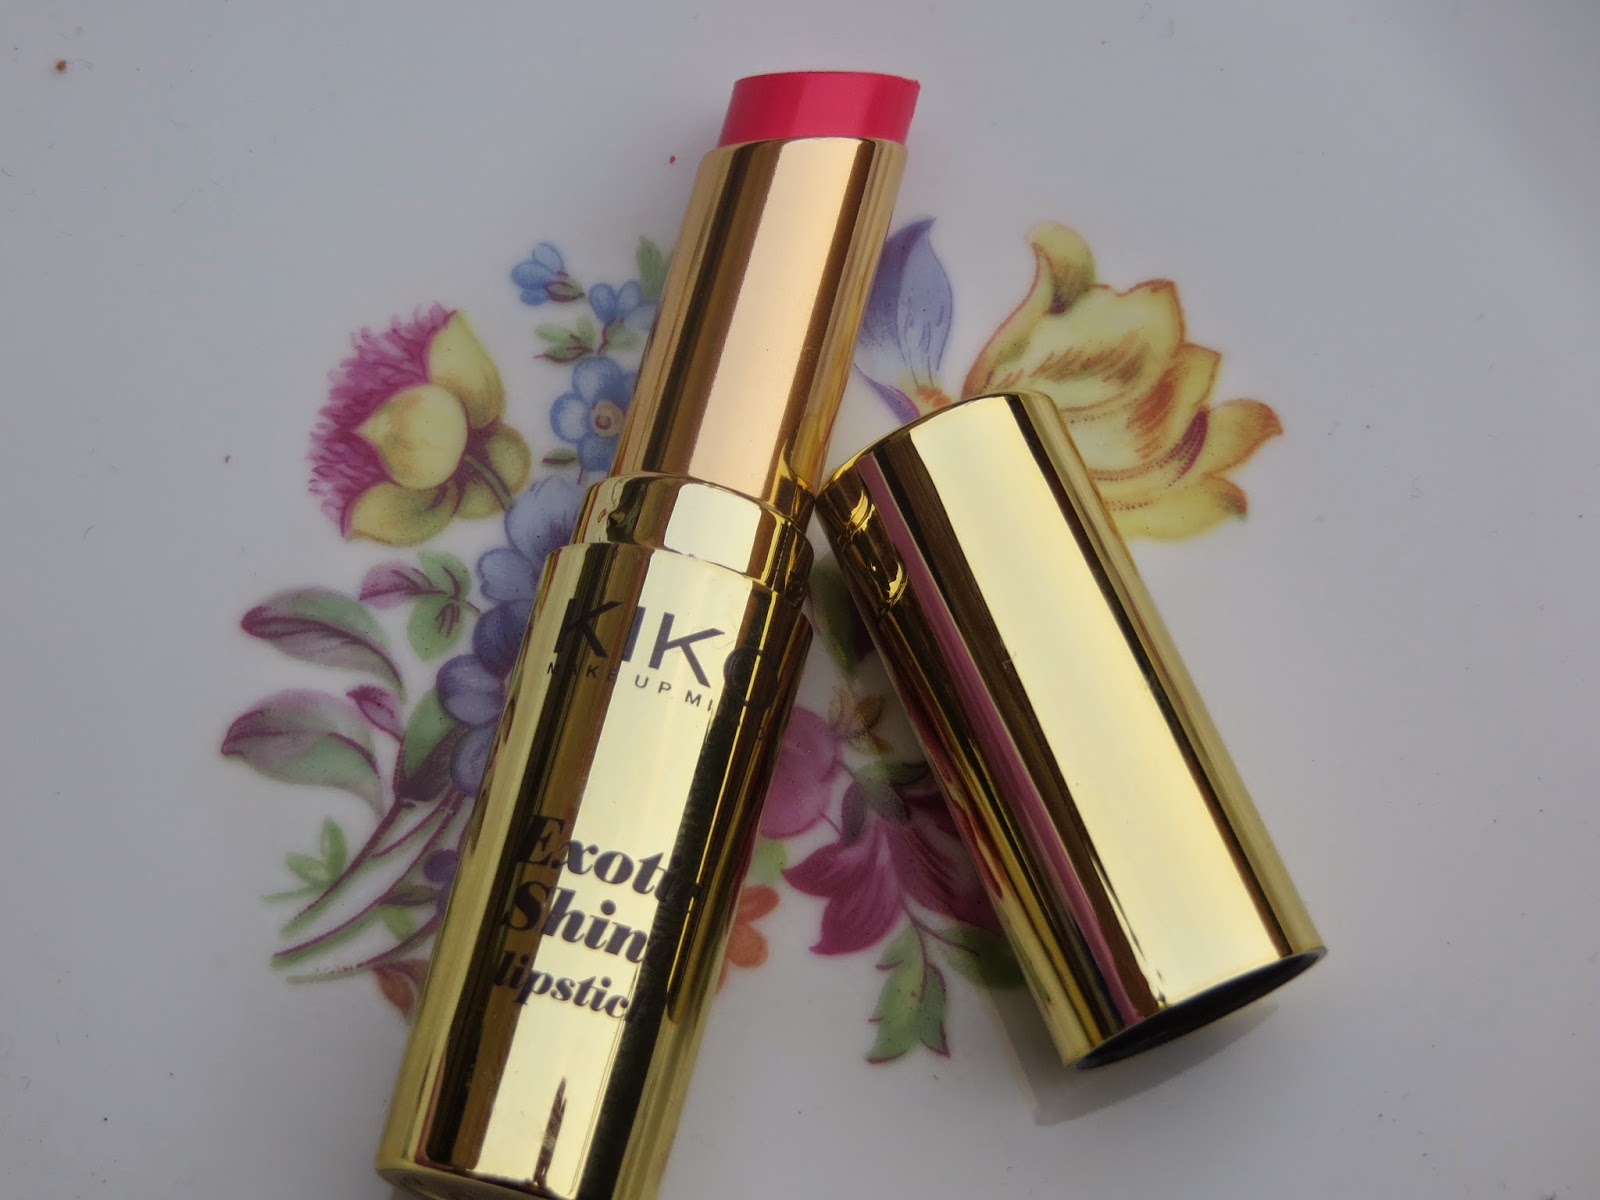 KIKO, Italian, Pink, Gold, Lipstick, Creamy, Pigmentation, Colour, Cheap, Highstreet, Review, Swatch, Lips